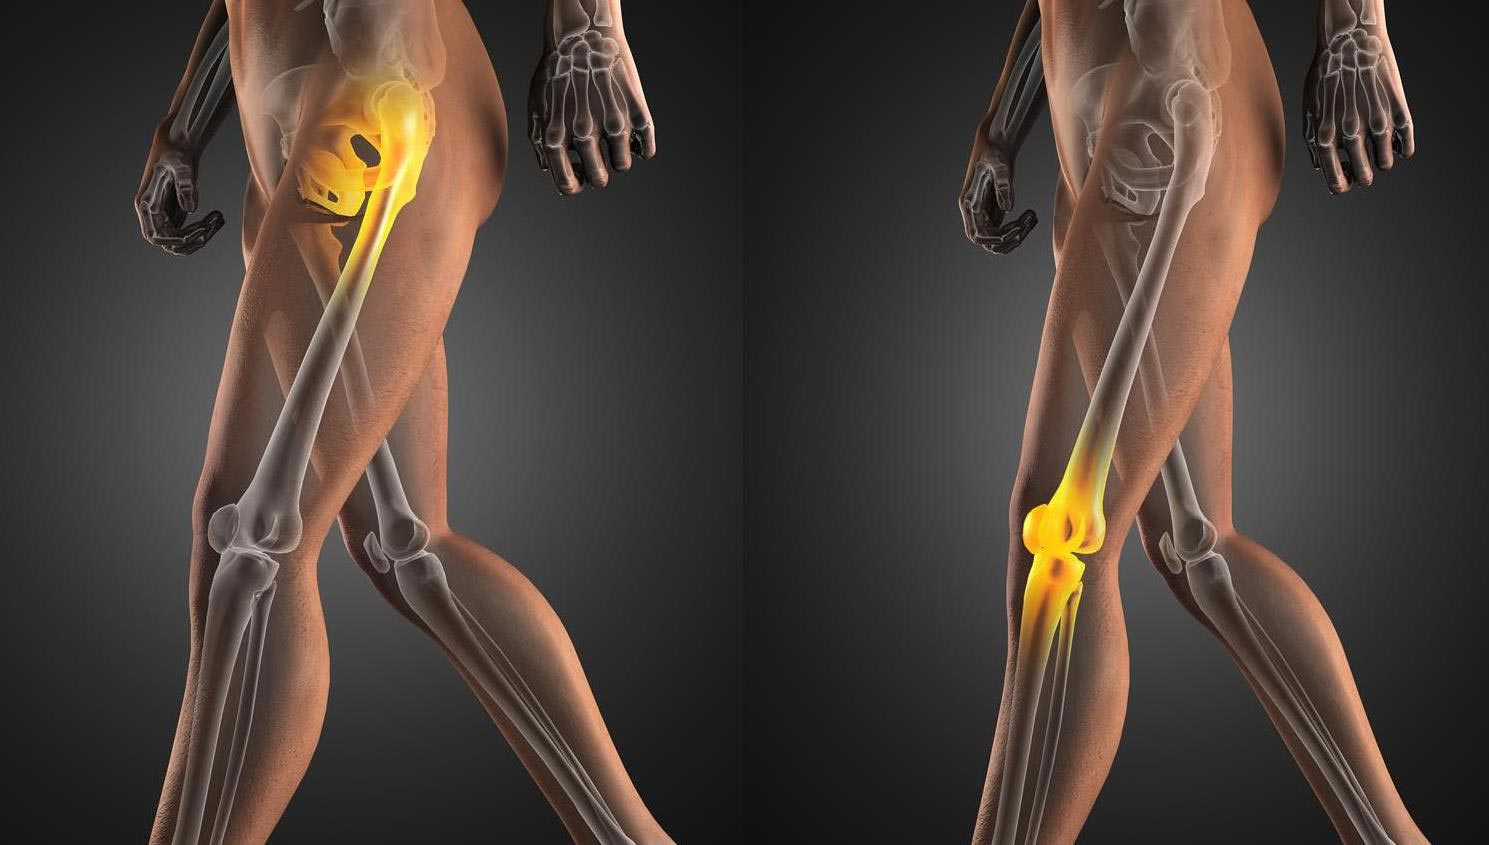 Suffer with hip or knee pain?